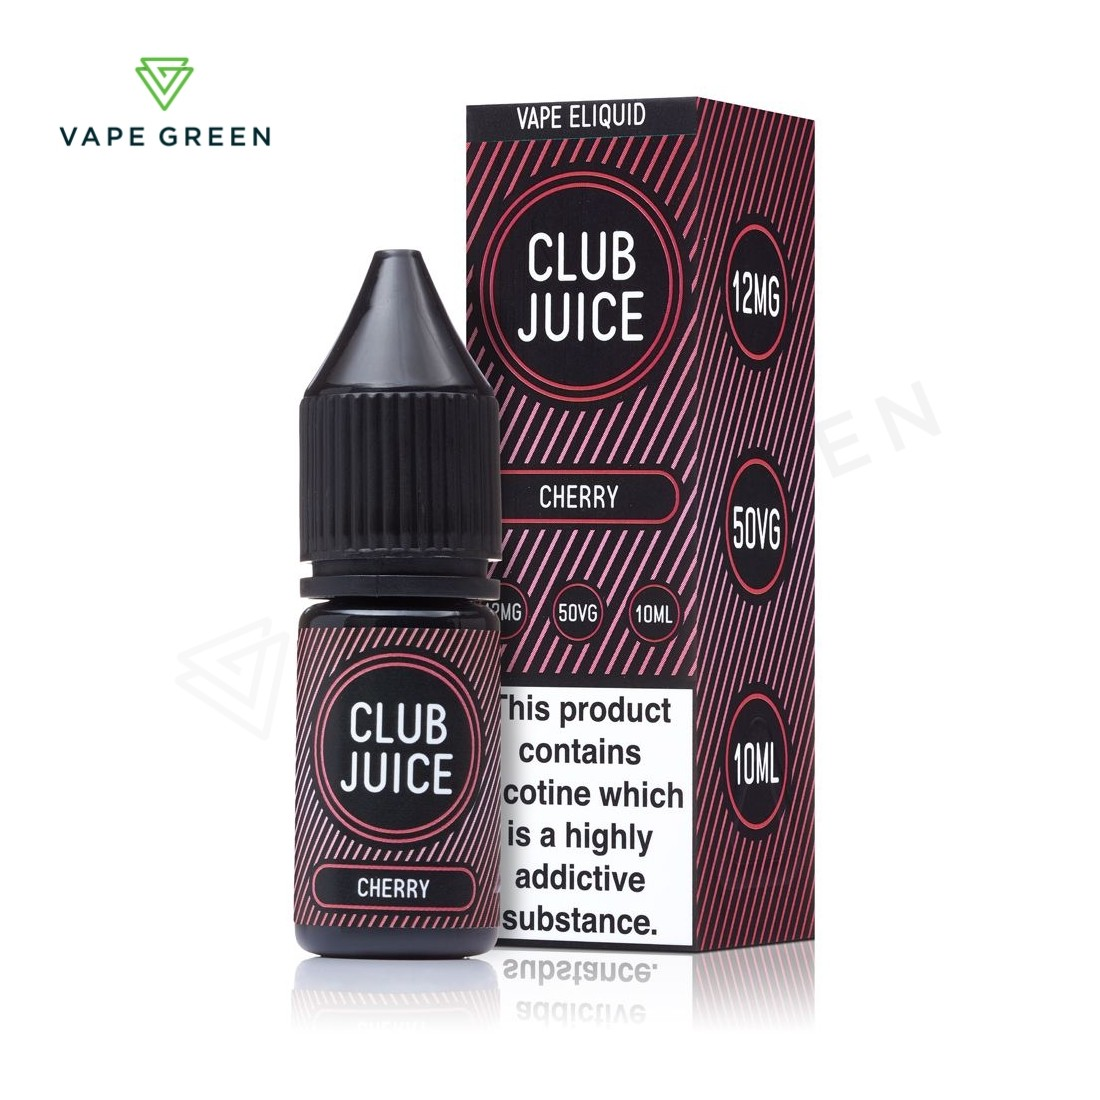 Cherry E-Liquid by Club Juice 50/50